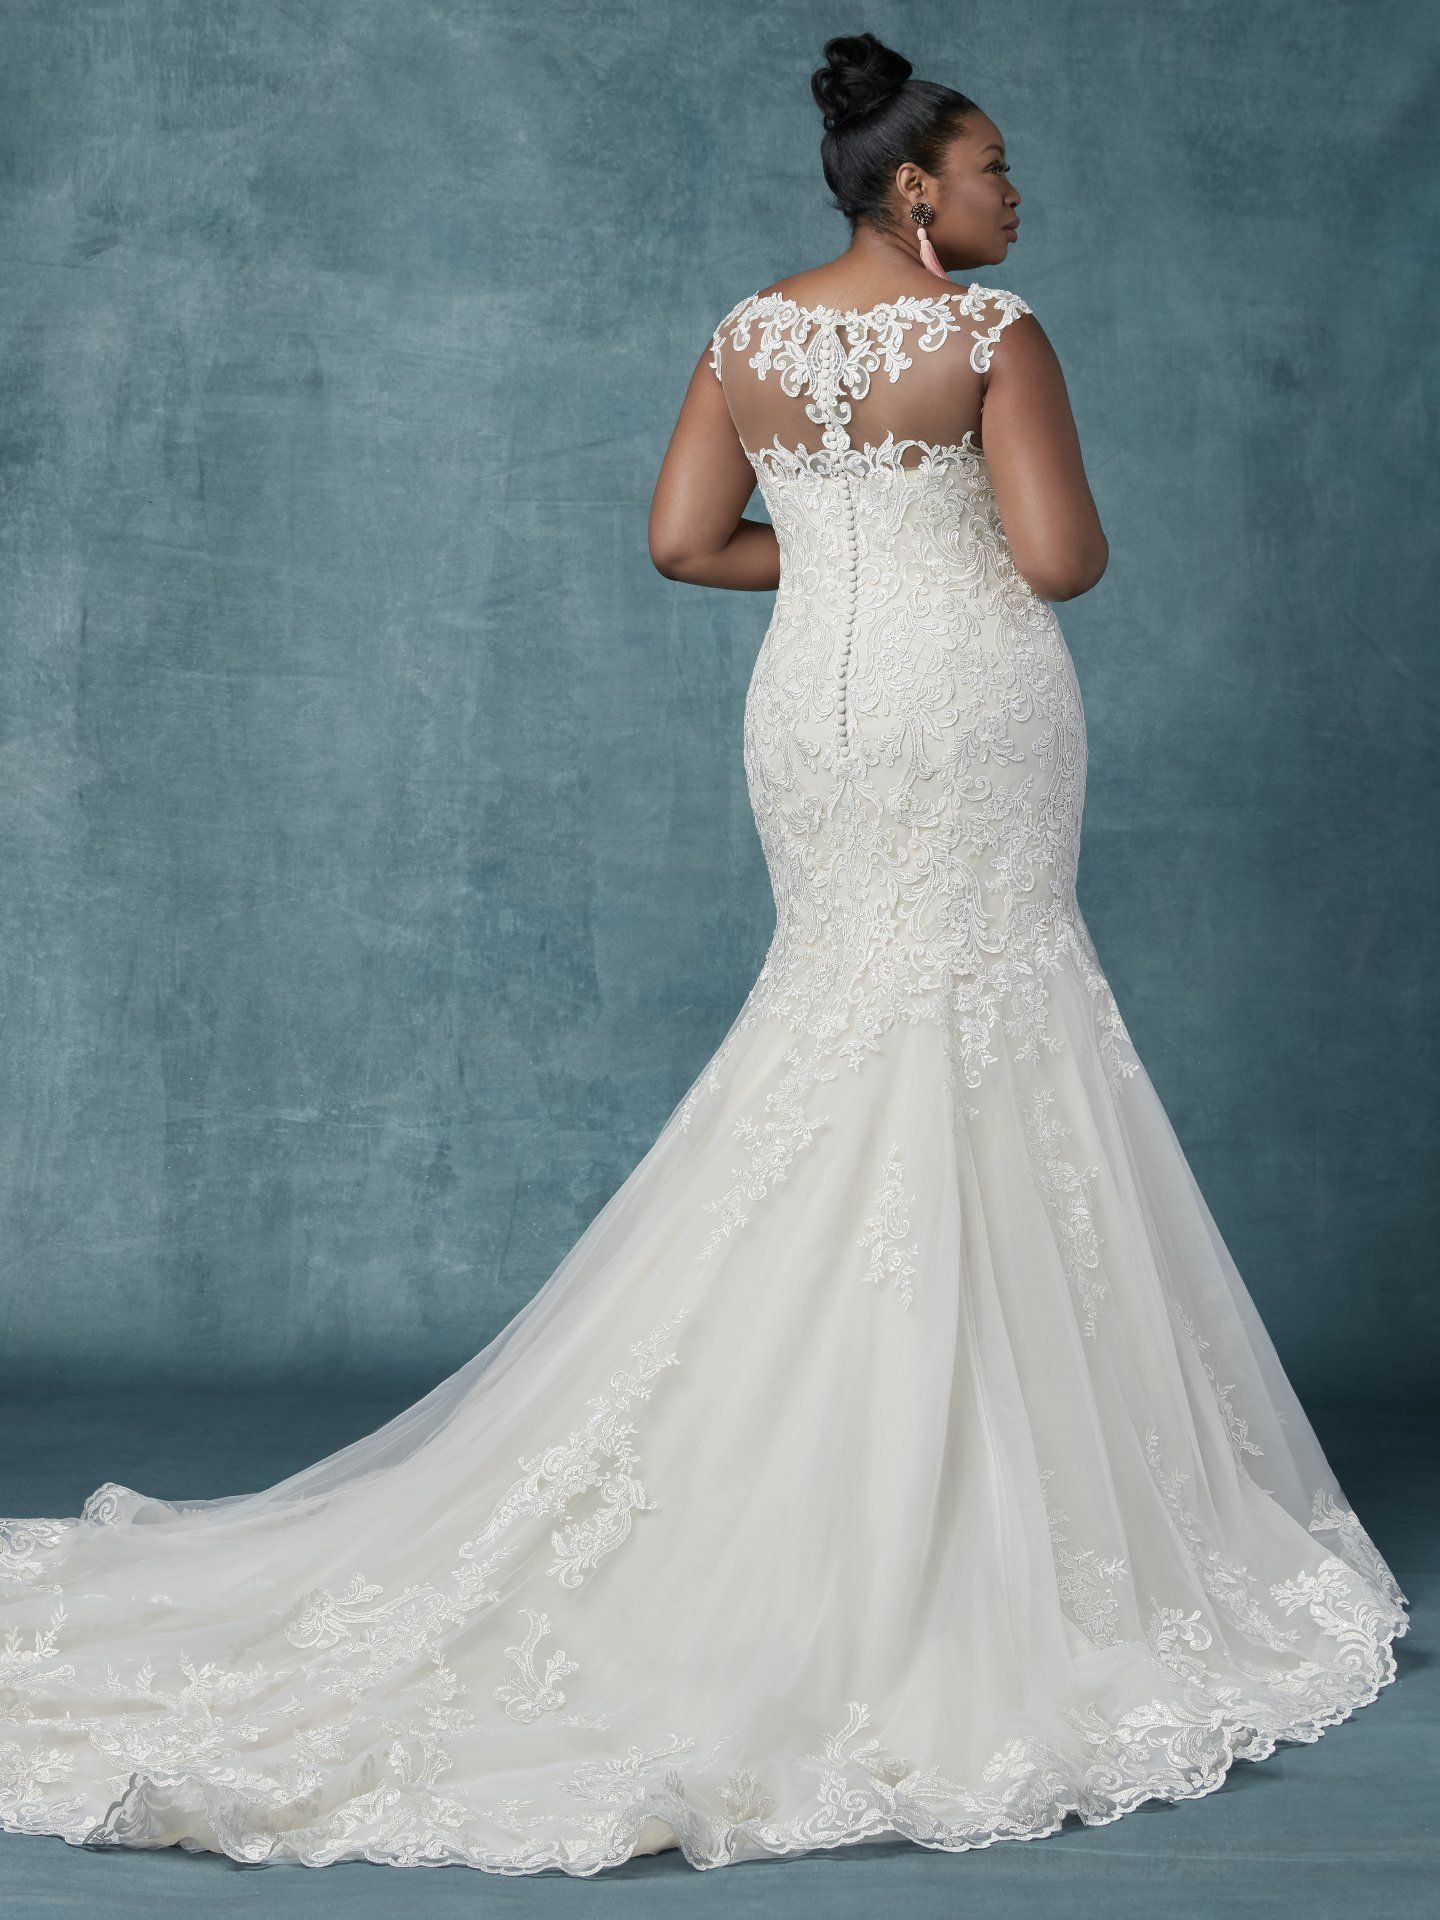 Plus size wedding dress sample size 20 inventory #2636 | dress.